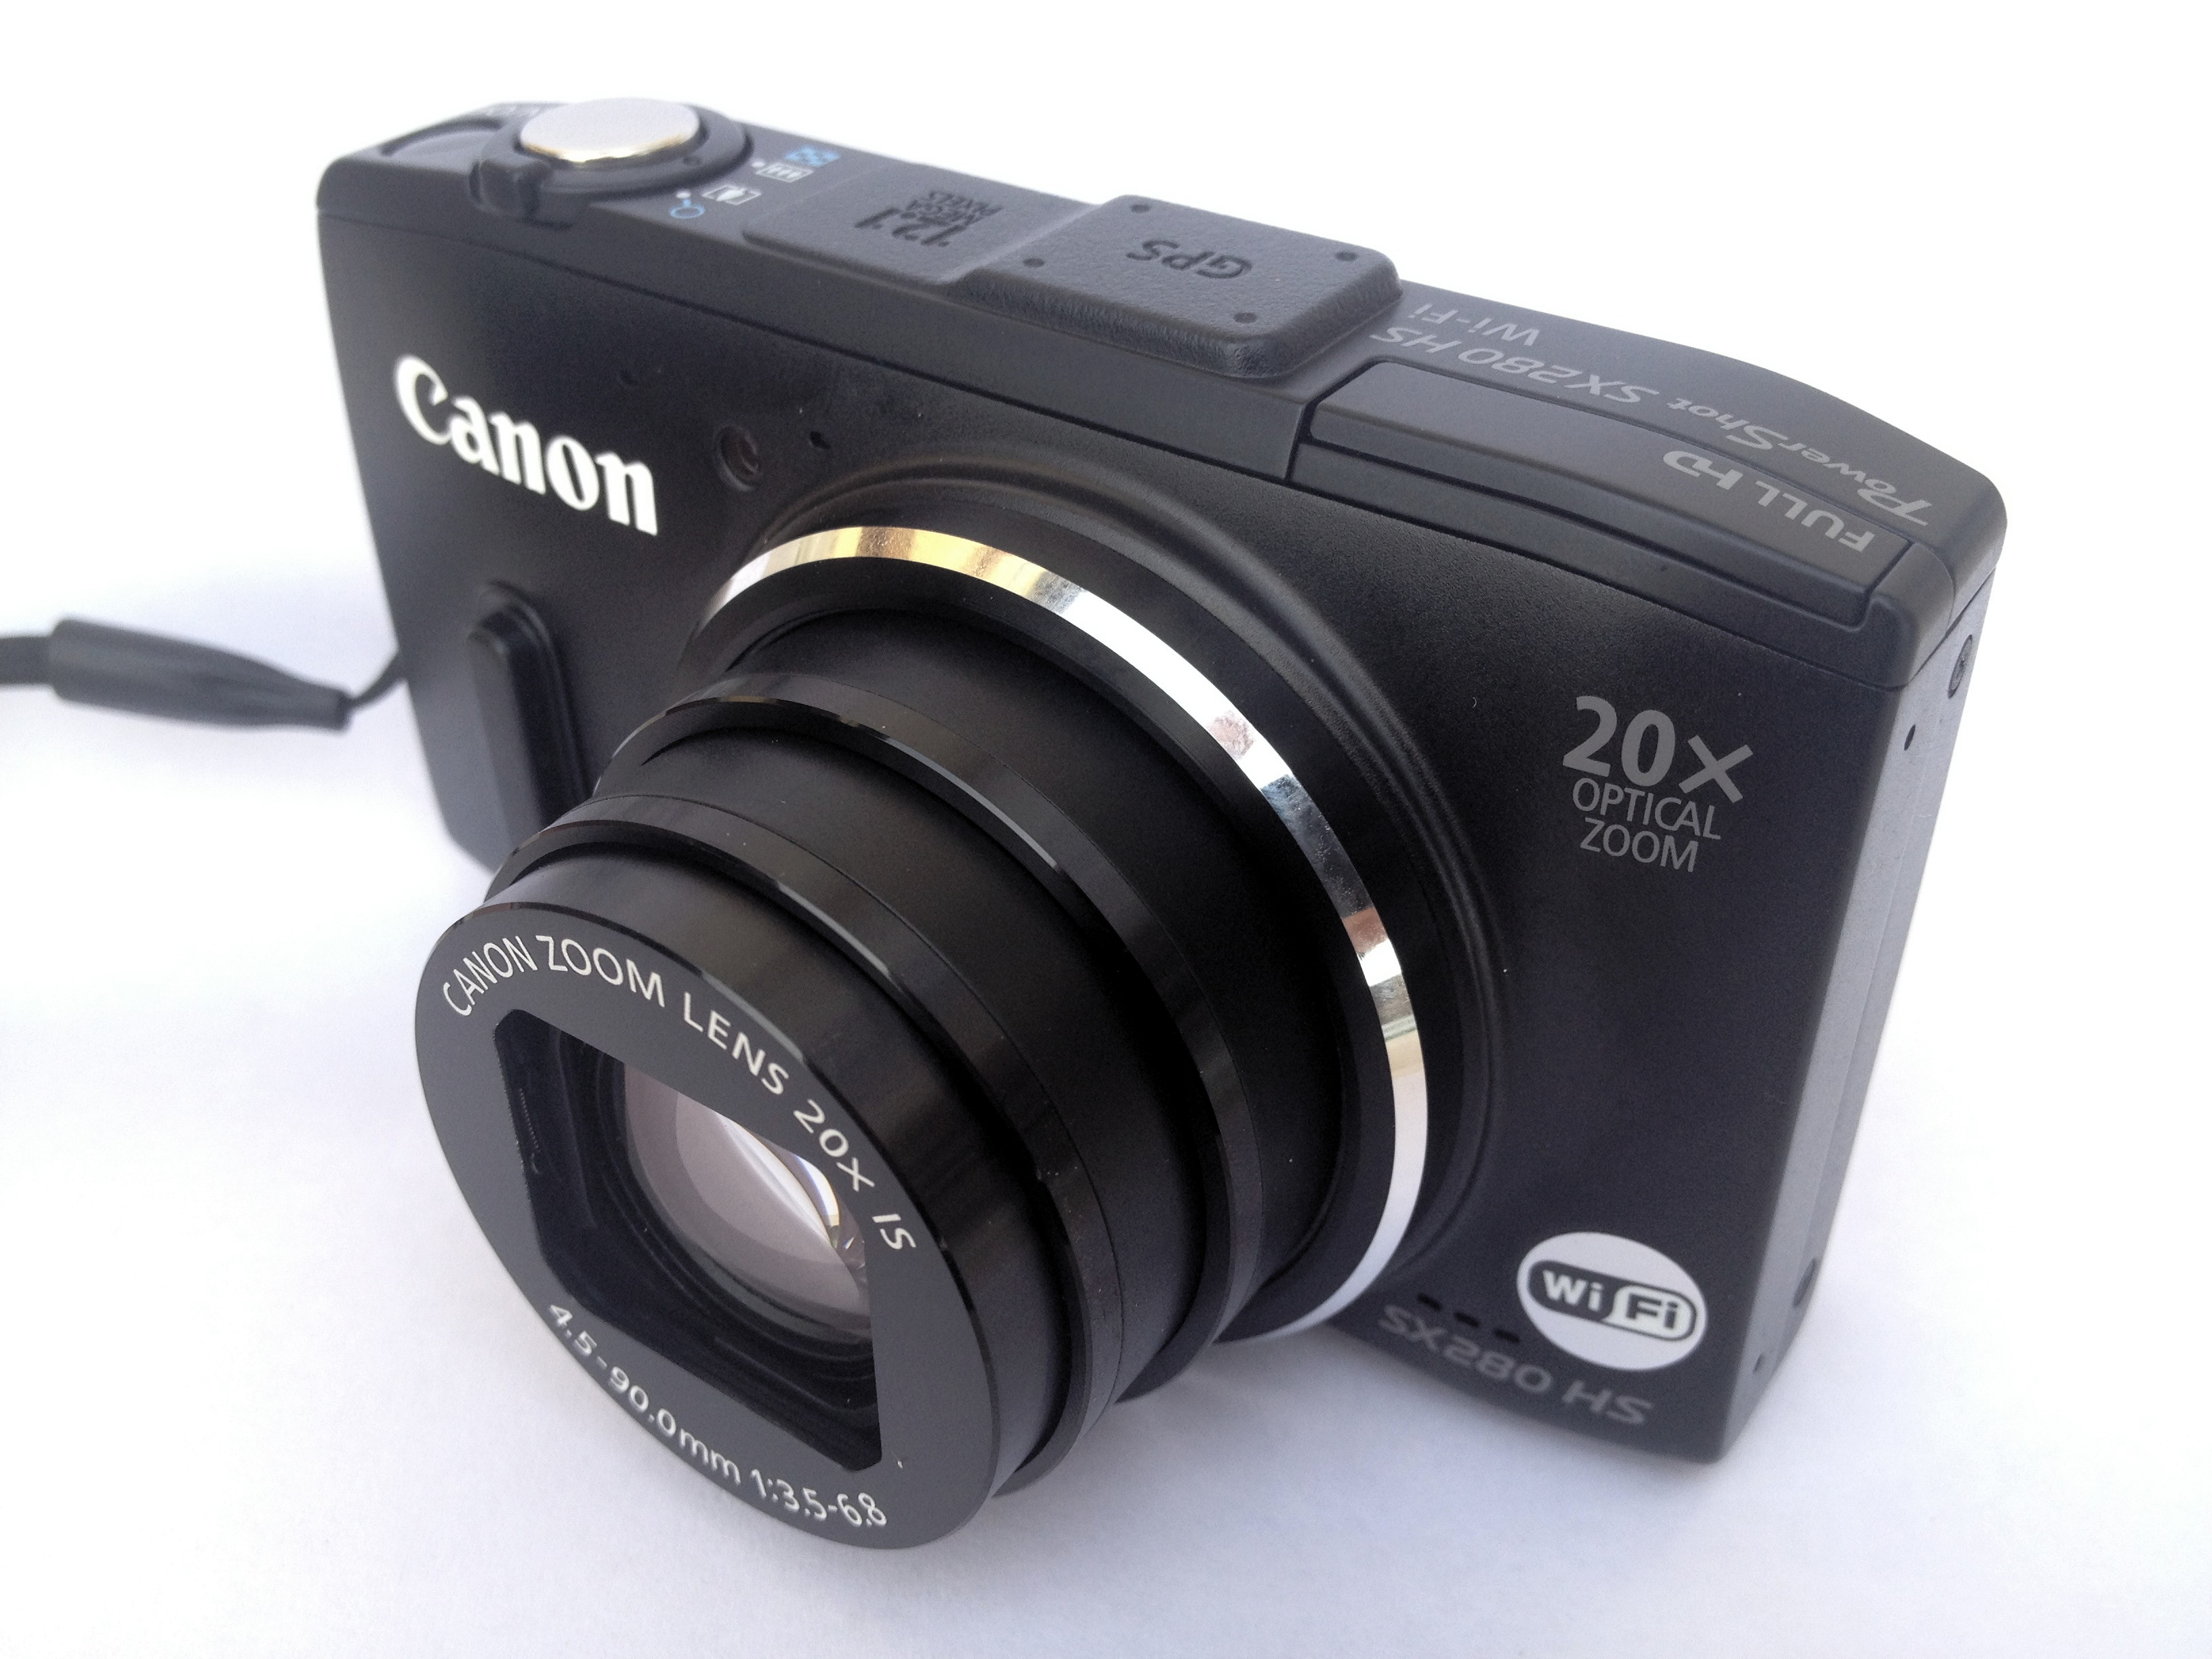 Canon PowerShot SX280 HS Digital Camera - ecoustics.com |Canon Powershot Sx280